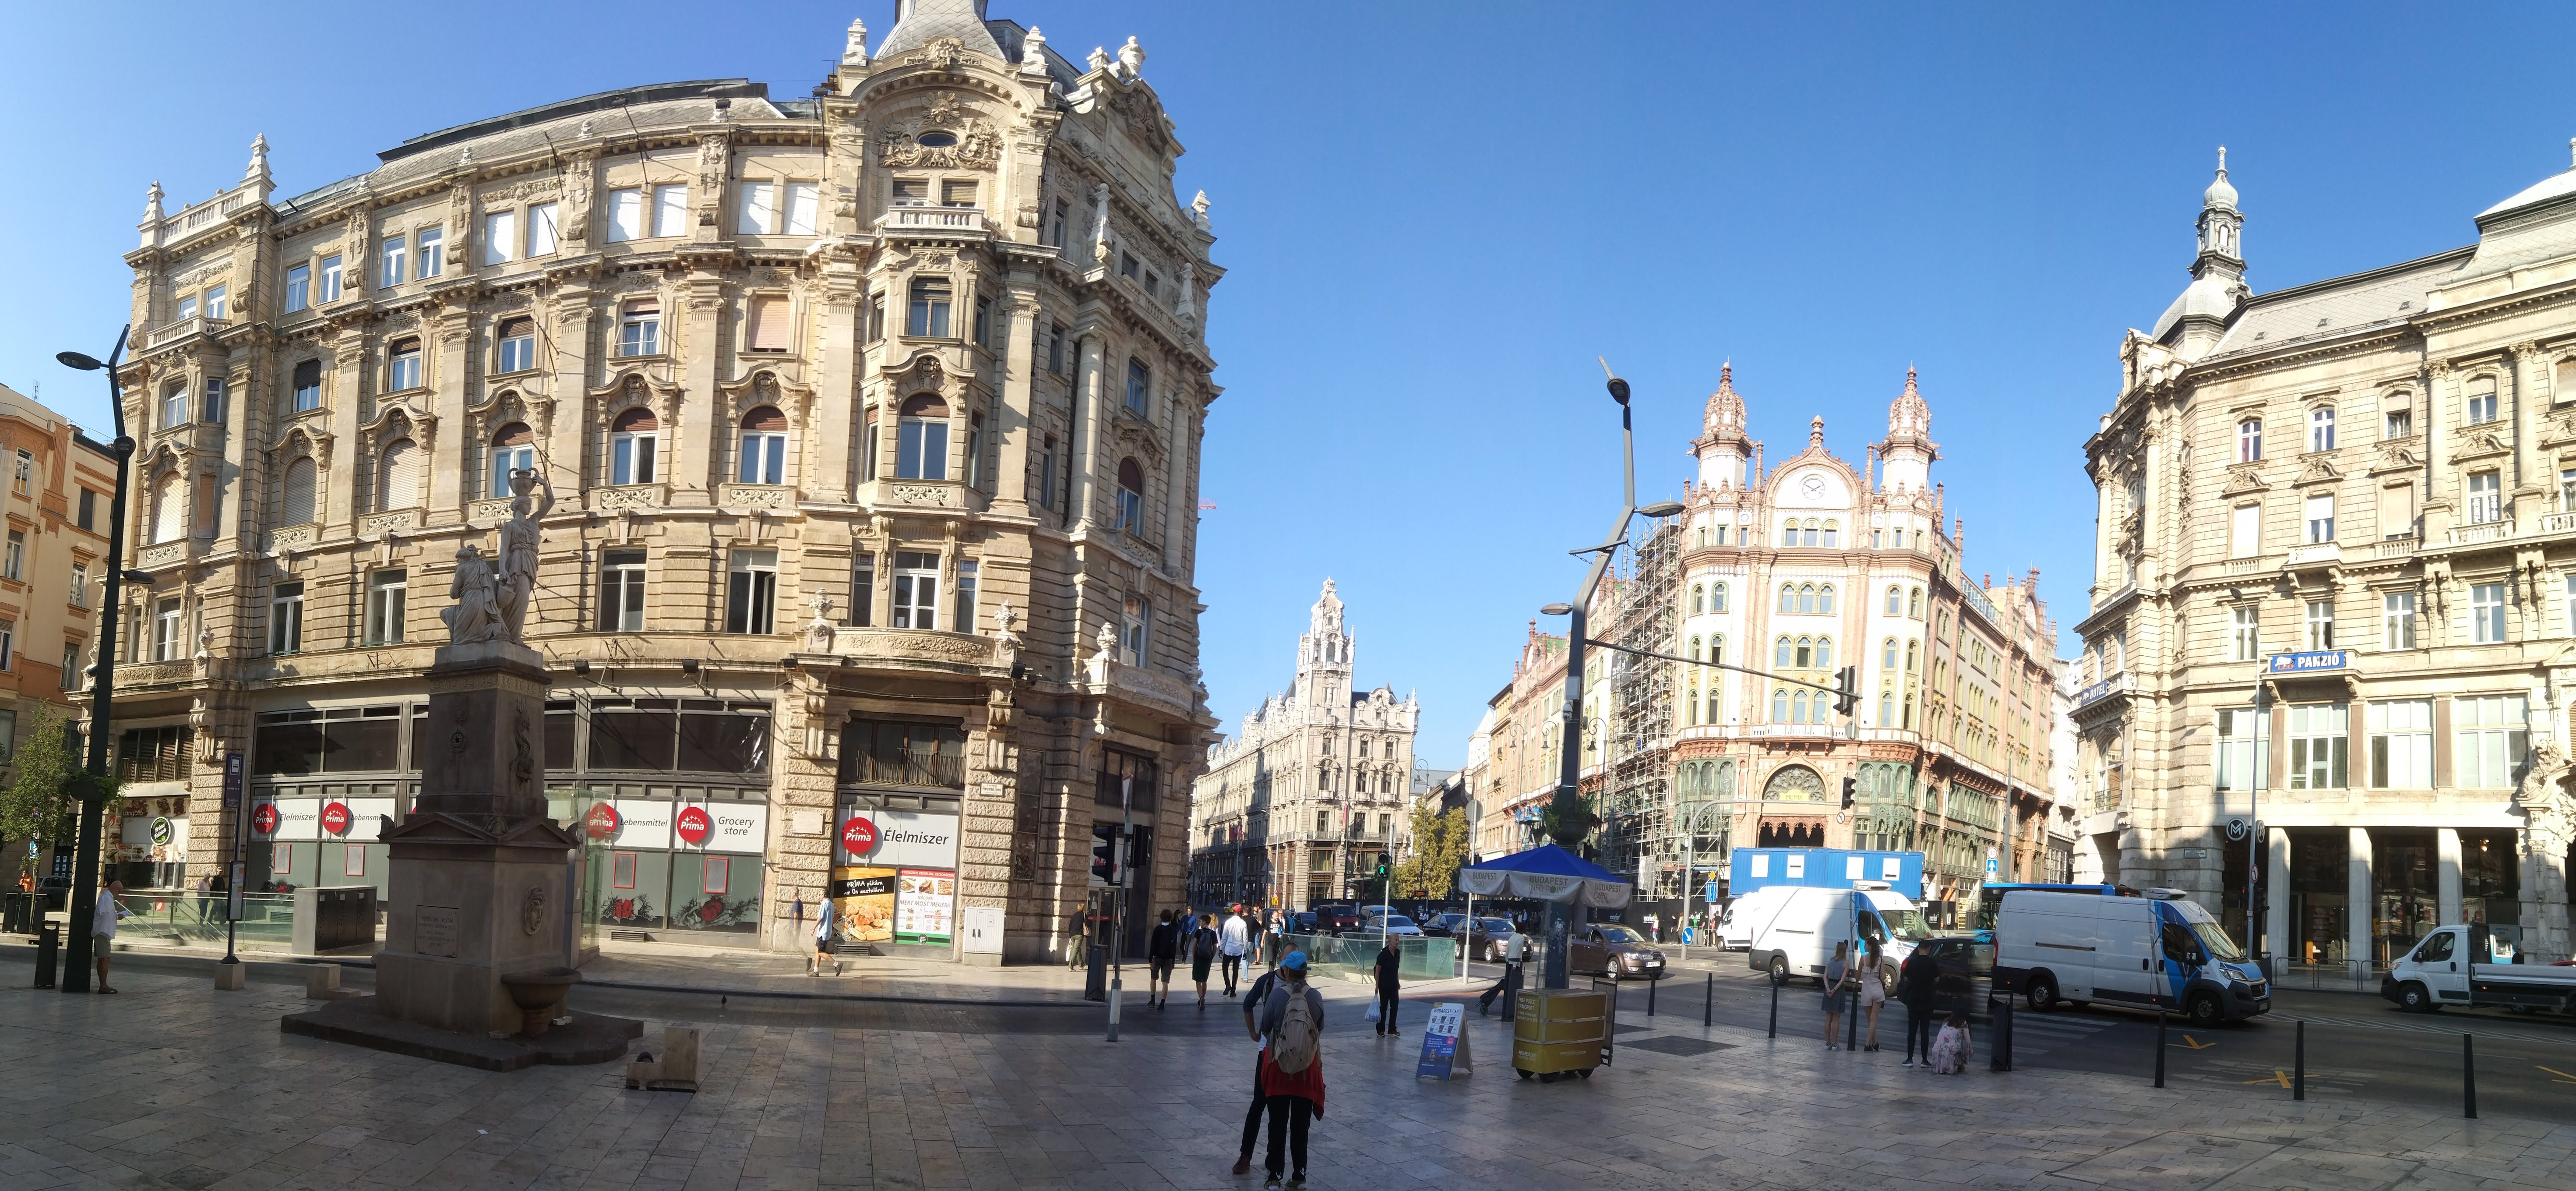 The Ferenciek square in Budapest